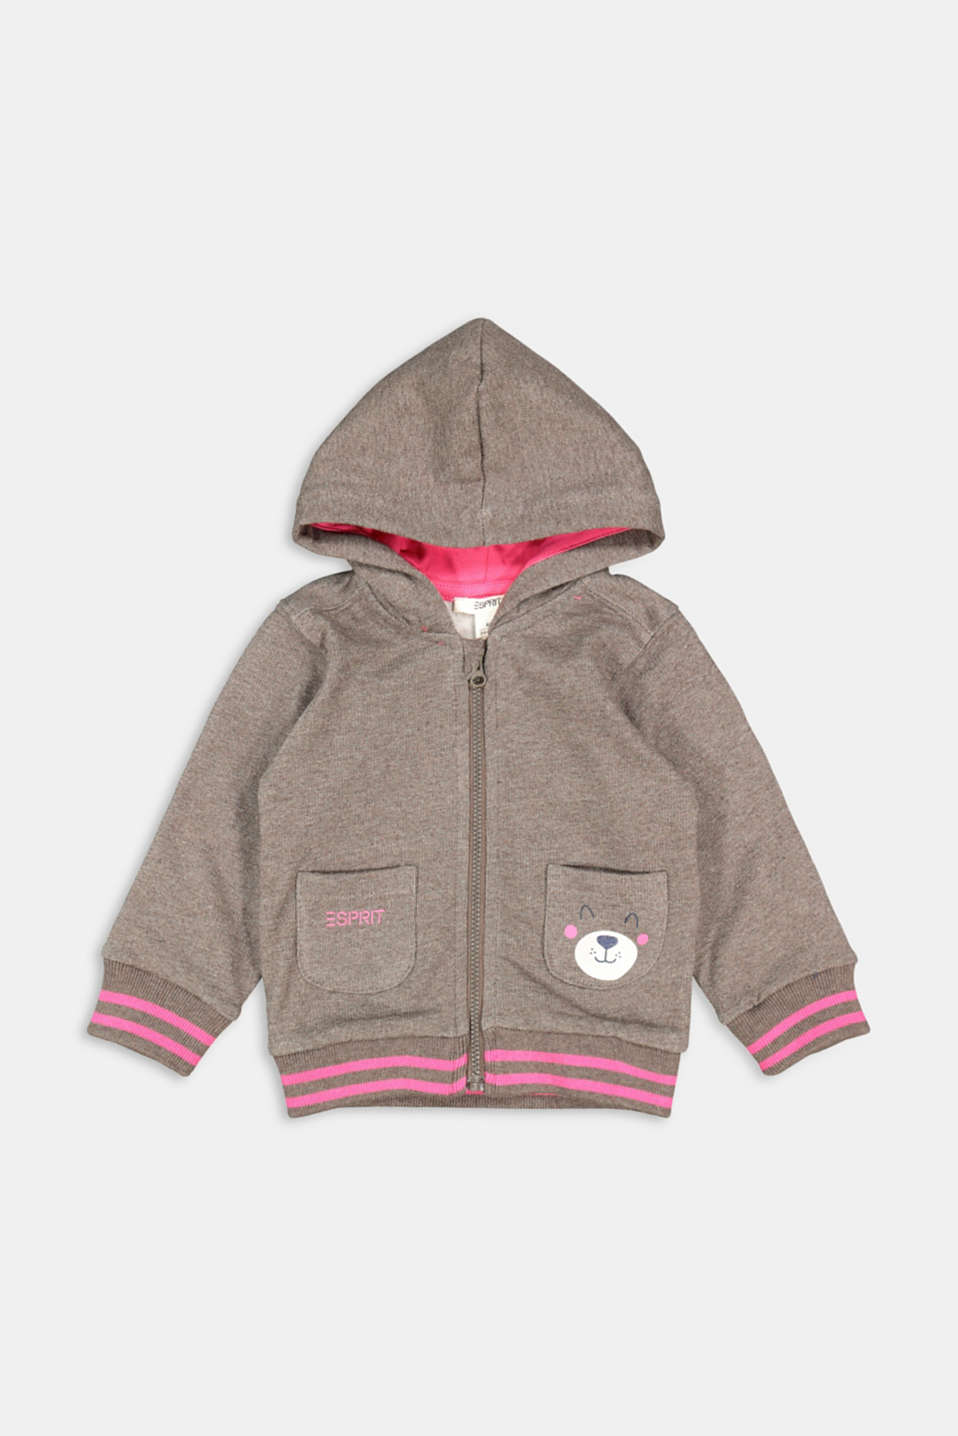 Esprit - Sweatshirt cardigan with hood, organic cotton